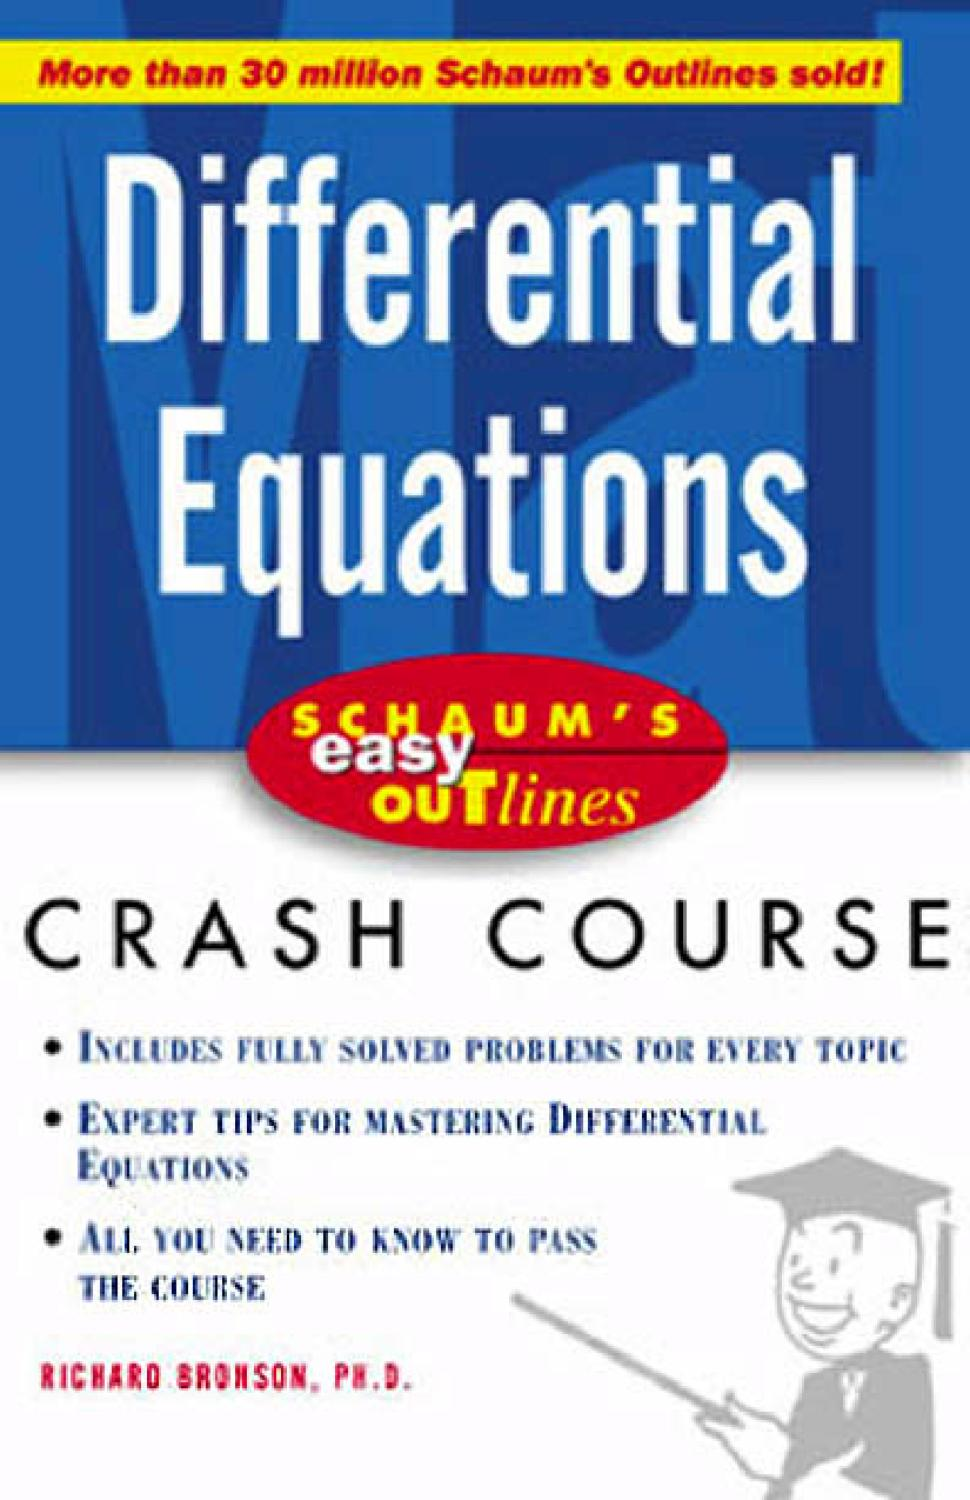 Mathematics Differential Equations Crash Course By Stephen Nikita Solve This Second Order Equation For A Rlc Series Circuit Issuu